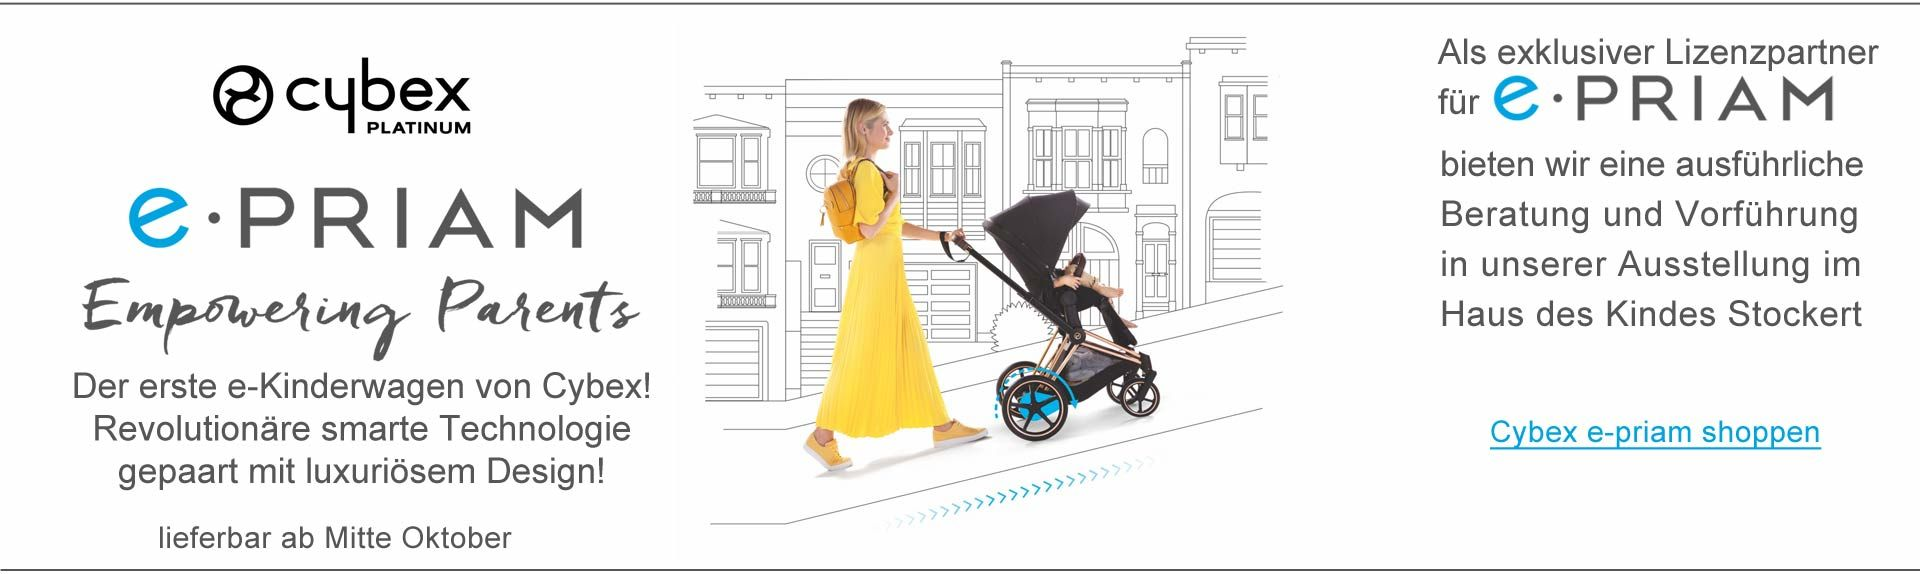 Cybex Platinum e-priam